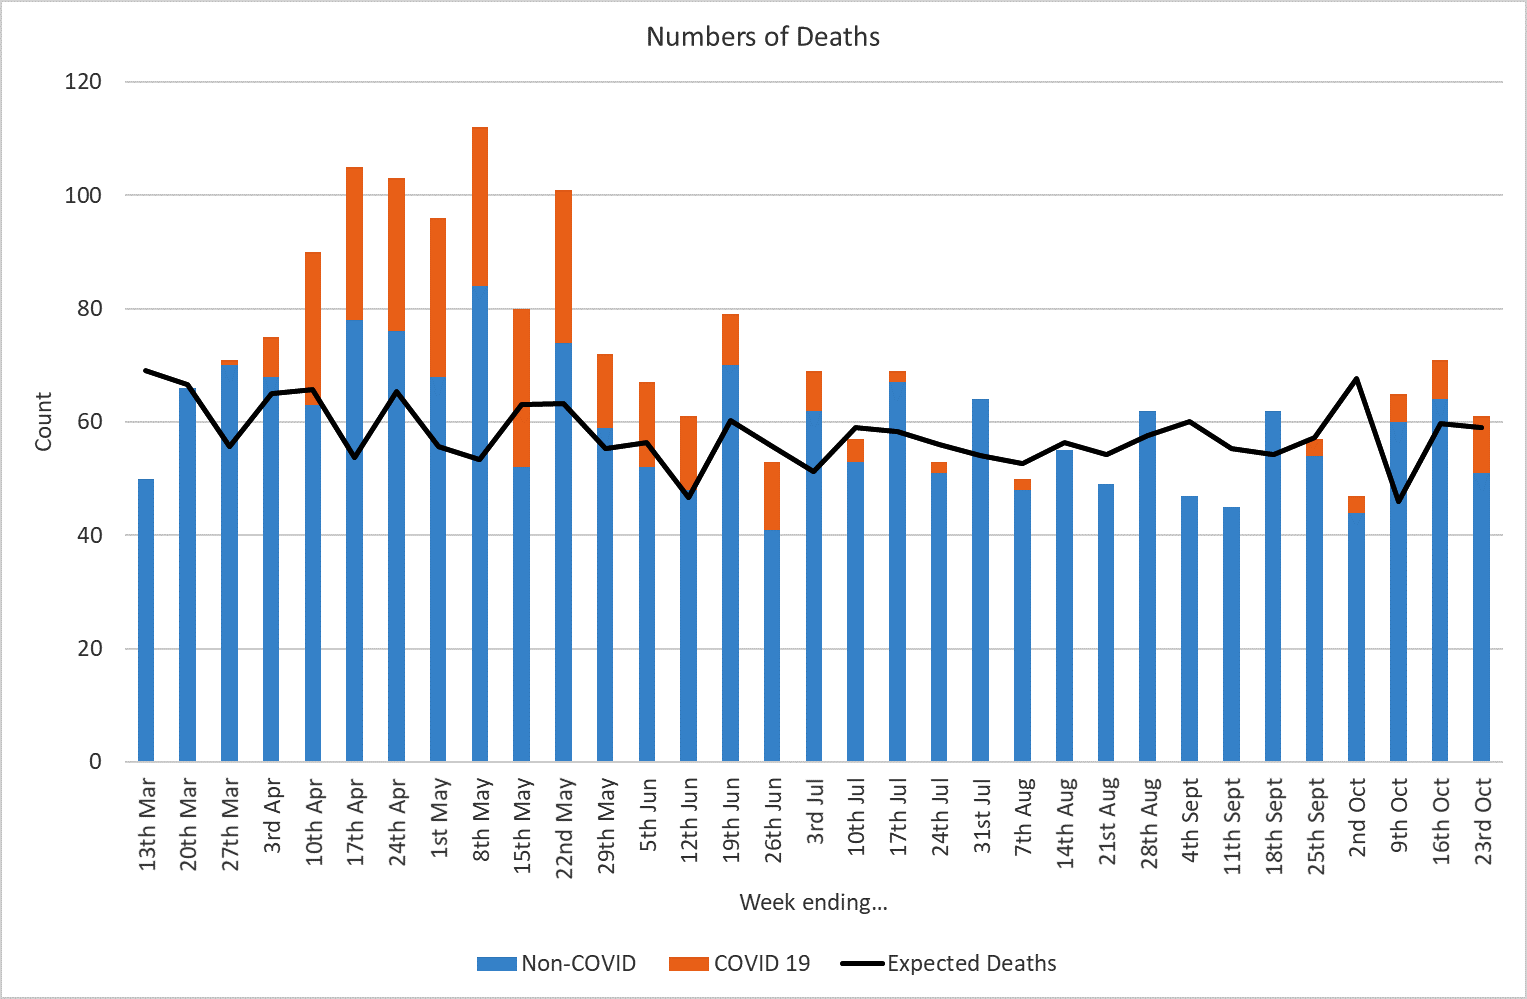 Graph showing number of deaths in Doncaster up to 23 October 2020